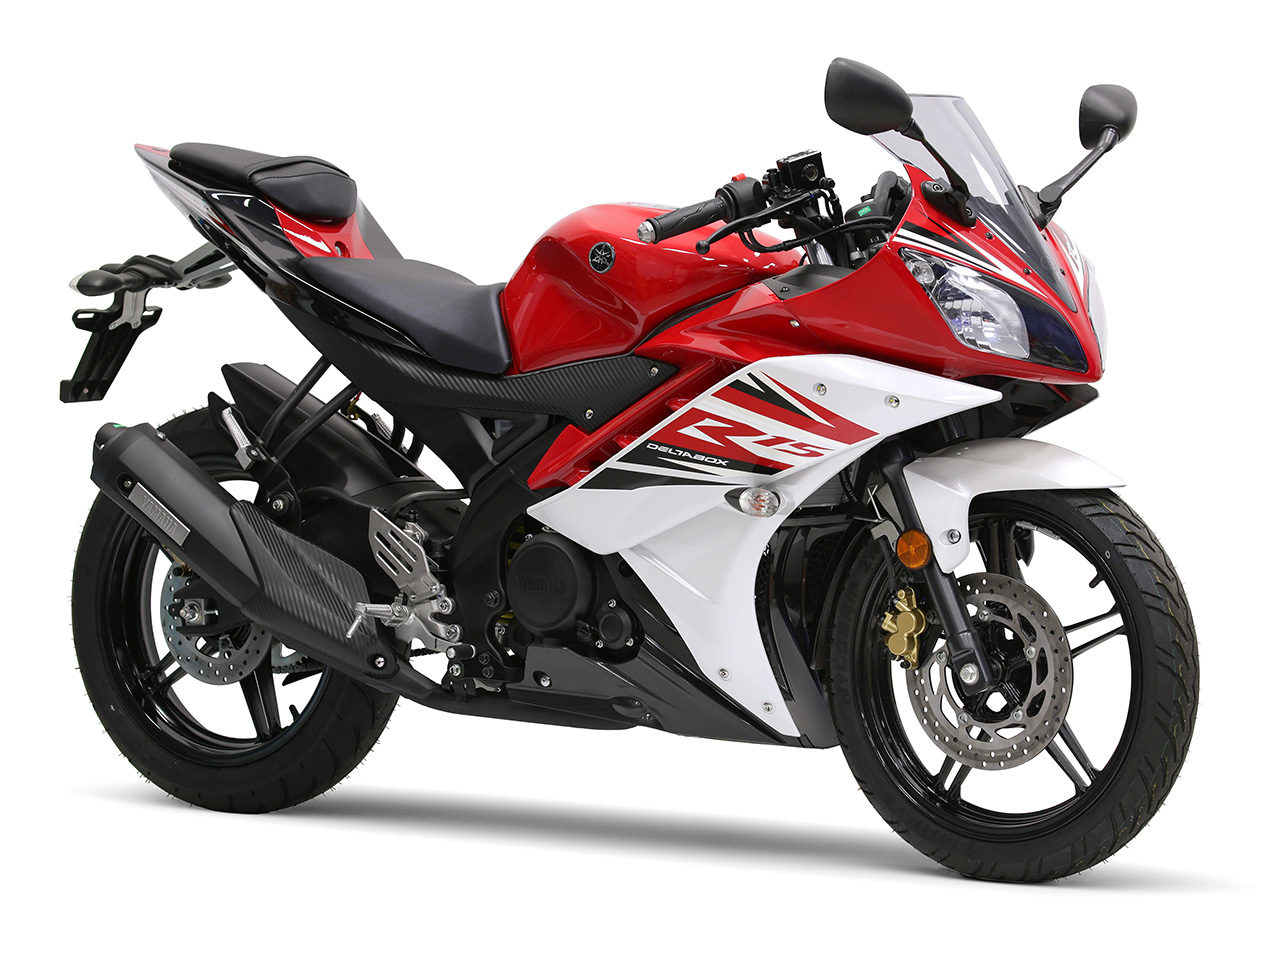 Yamaha YZF-R15 in racing red colour